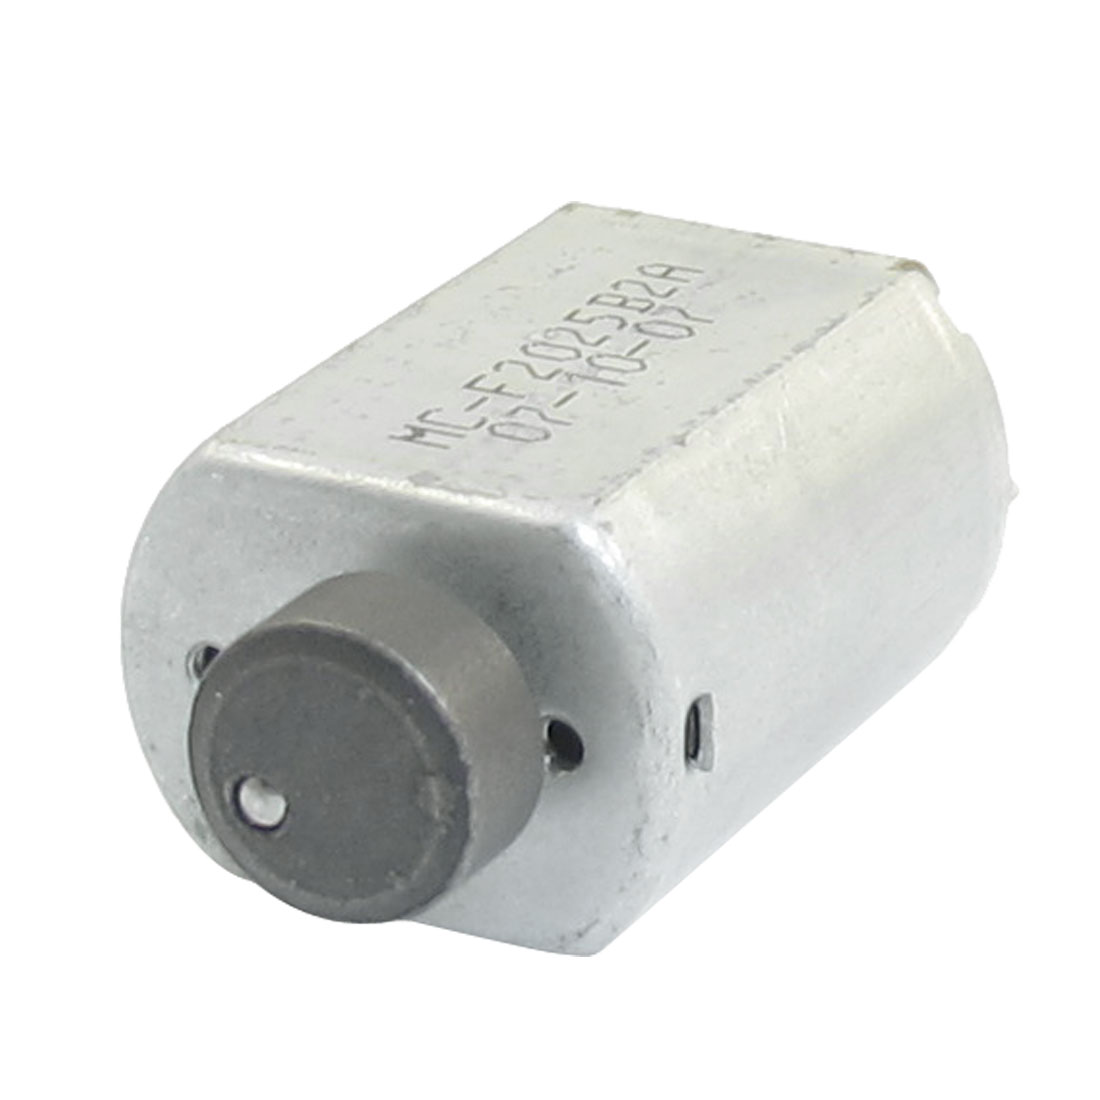 DC 6V 7000RPM Electric Mini Vibrating Vibration Motor